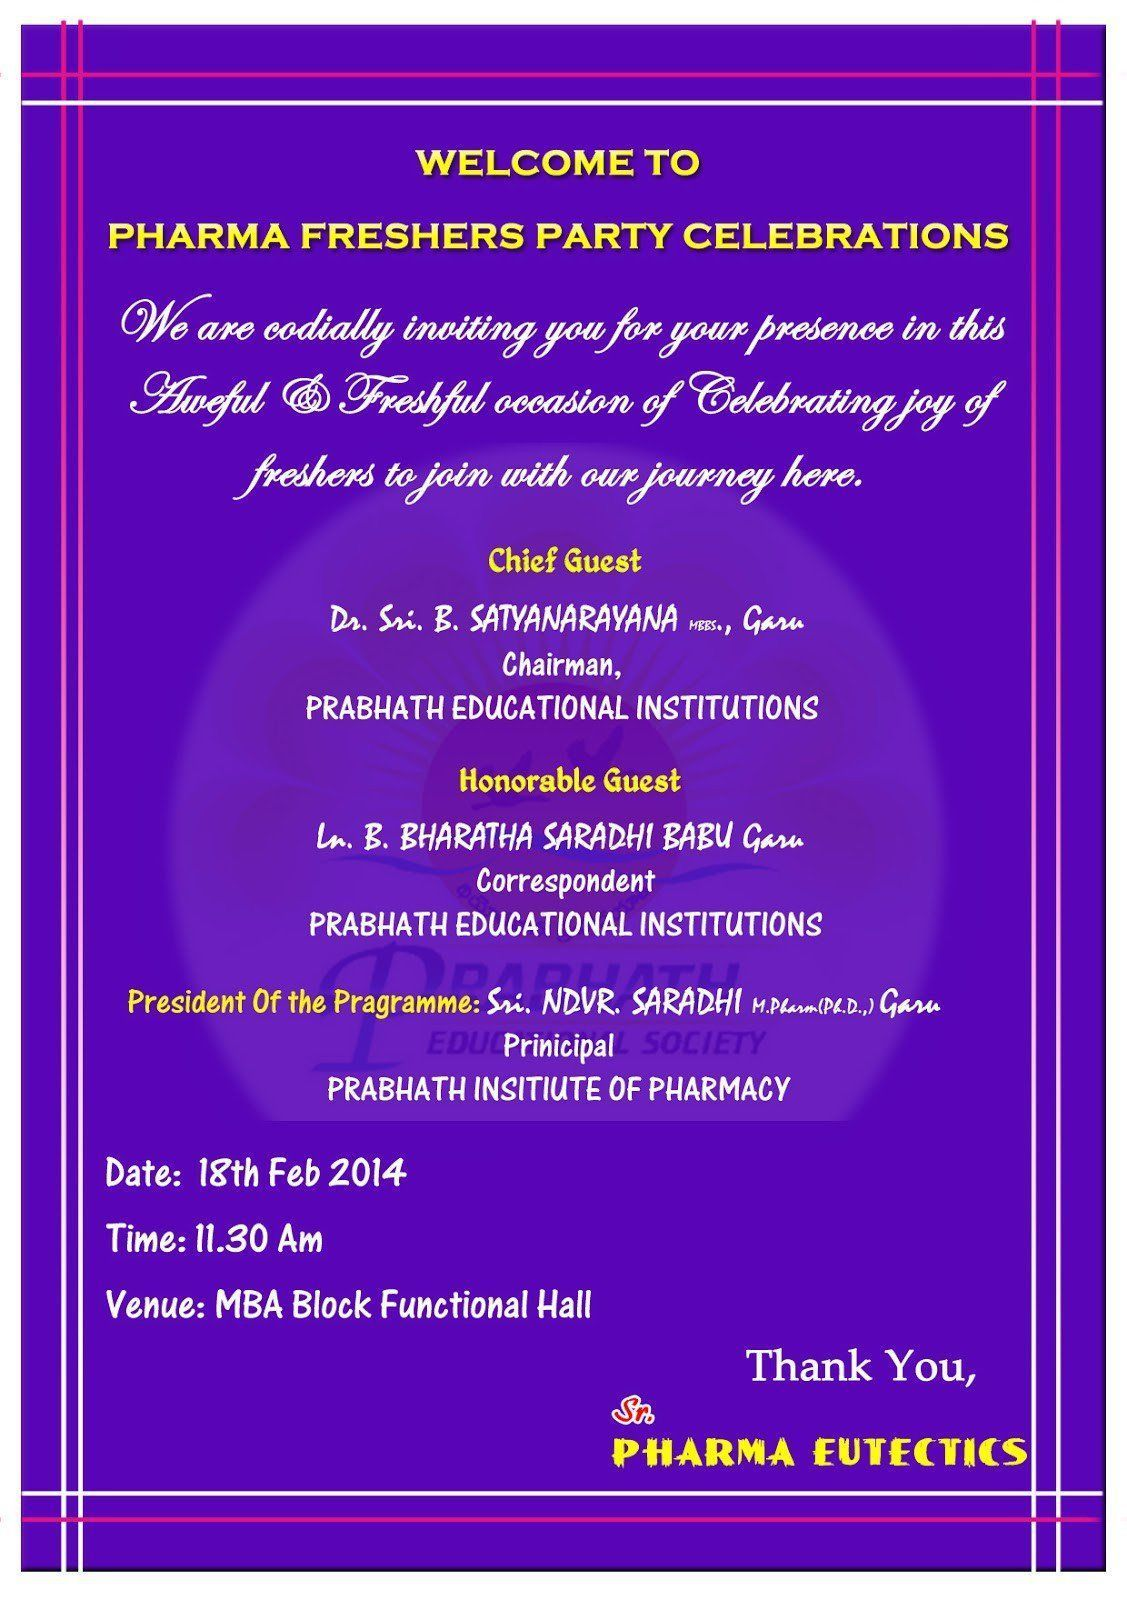 Invitation Card Quotes For Freshers Party In 2021 Freshers Party Birthday Party Invitation Wording Block Party Invitations